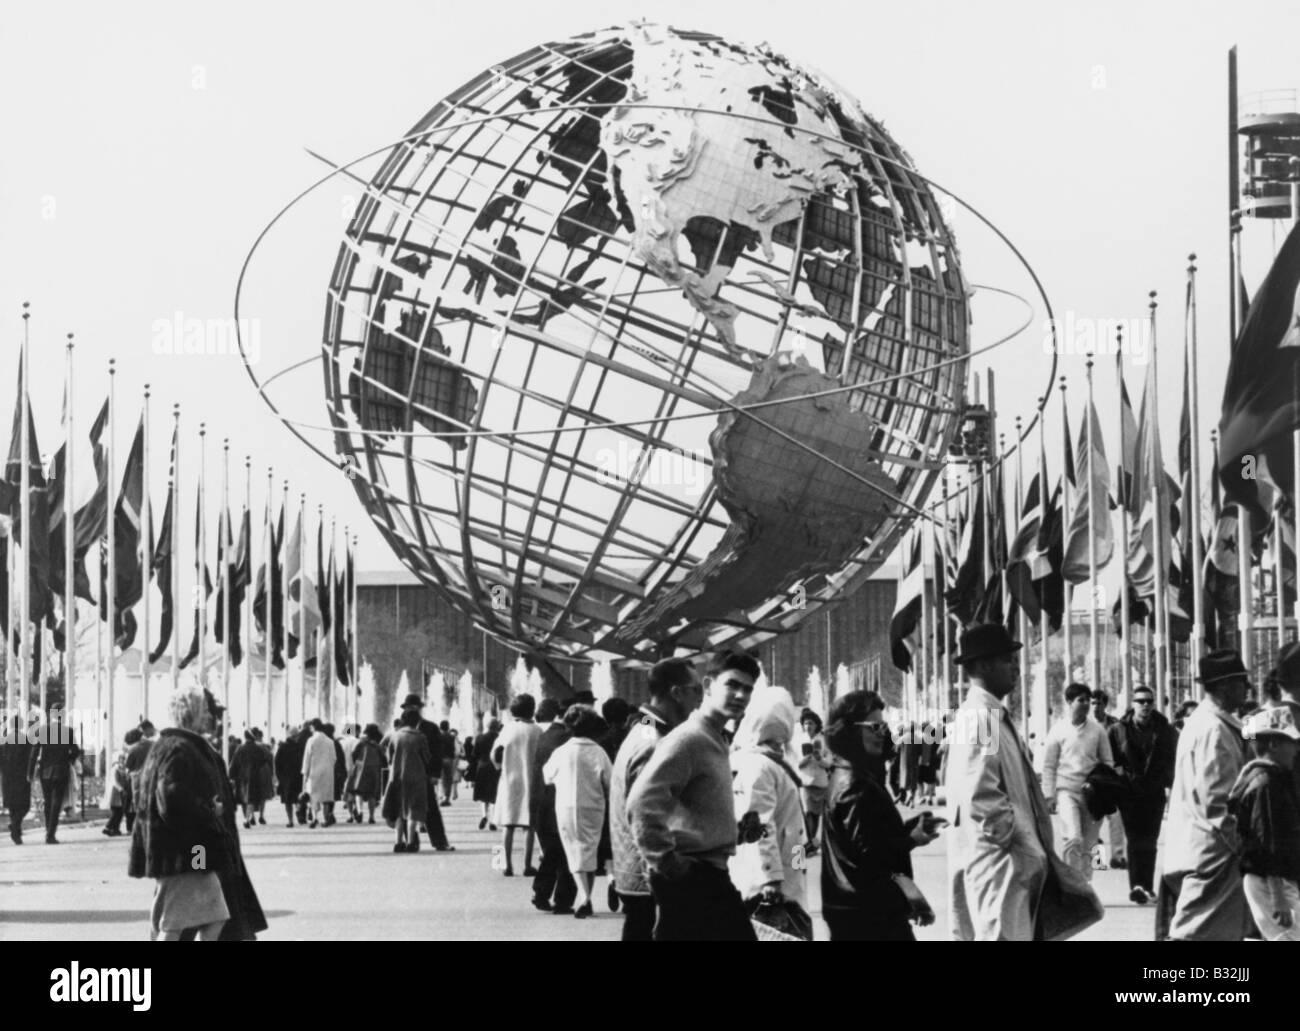 The Unisphere, symbol of the New York 1964-65 World's Fair. Flushing Meadow Park, New York - Stock Image